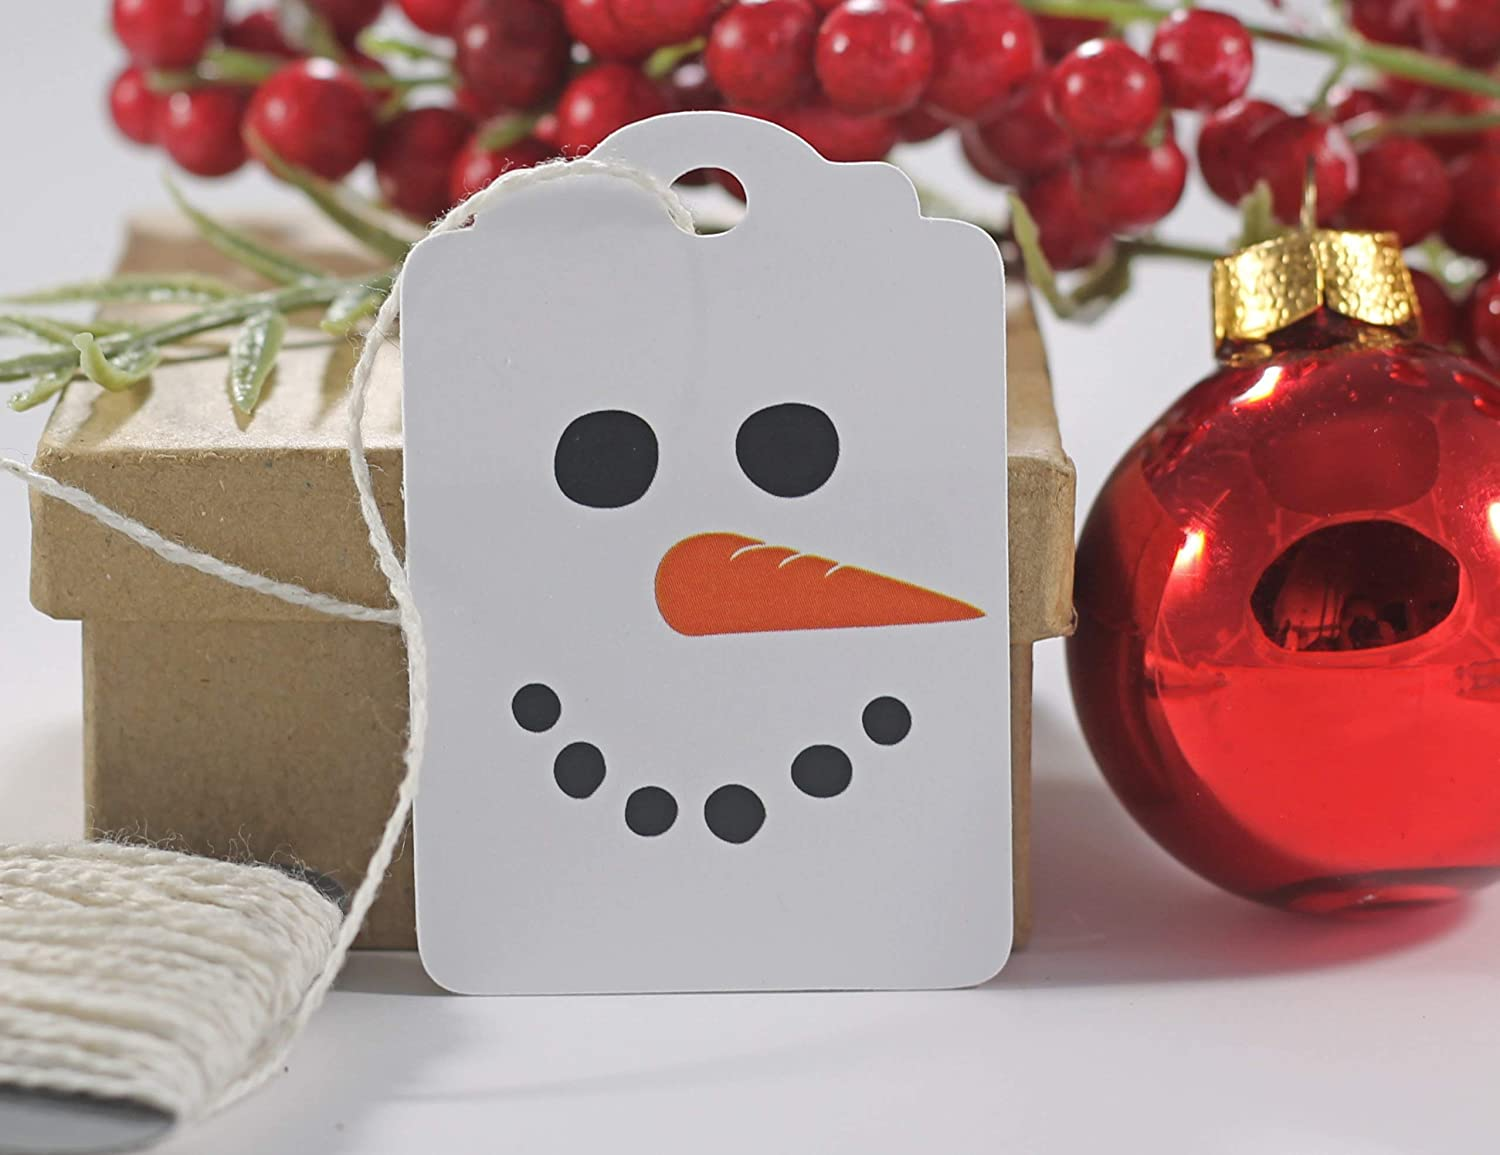 B0167P4WYG Snowman Christmas Gift Tags - Holiday Labels (Set of 10) 717WhB4IcrL